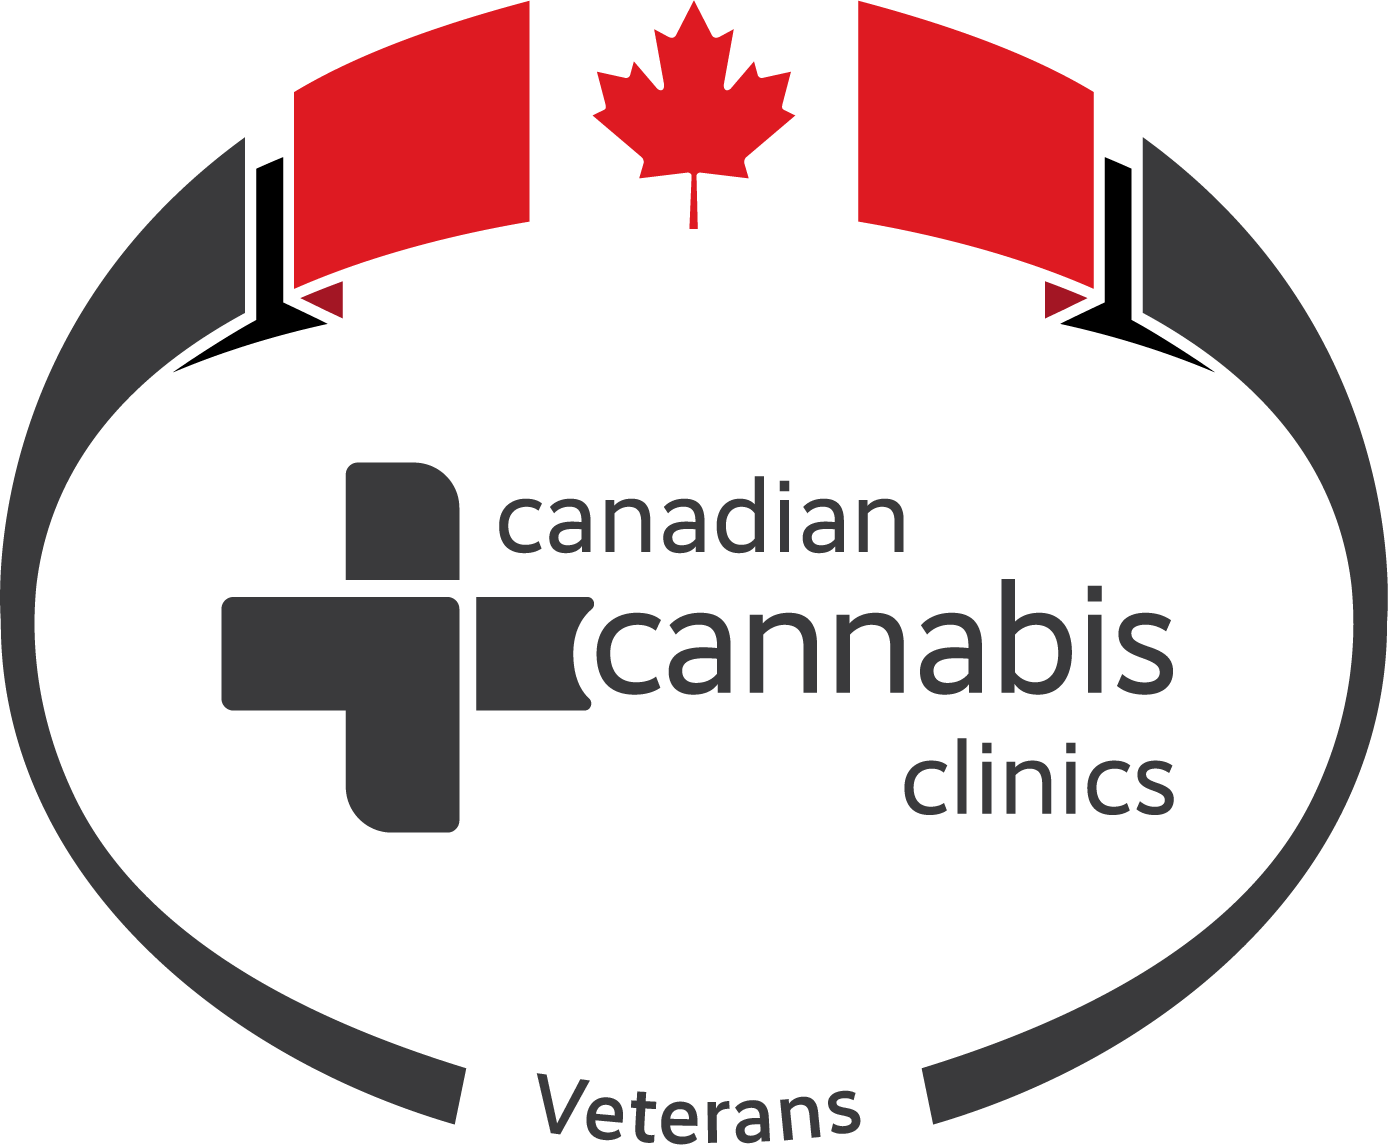 Canadian Cannabis Clinics Veterans Logo